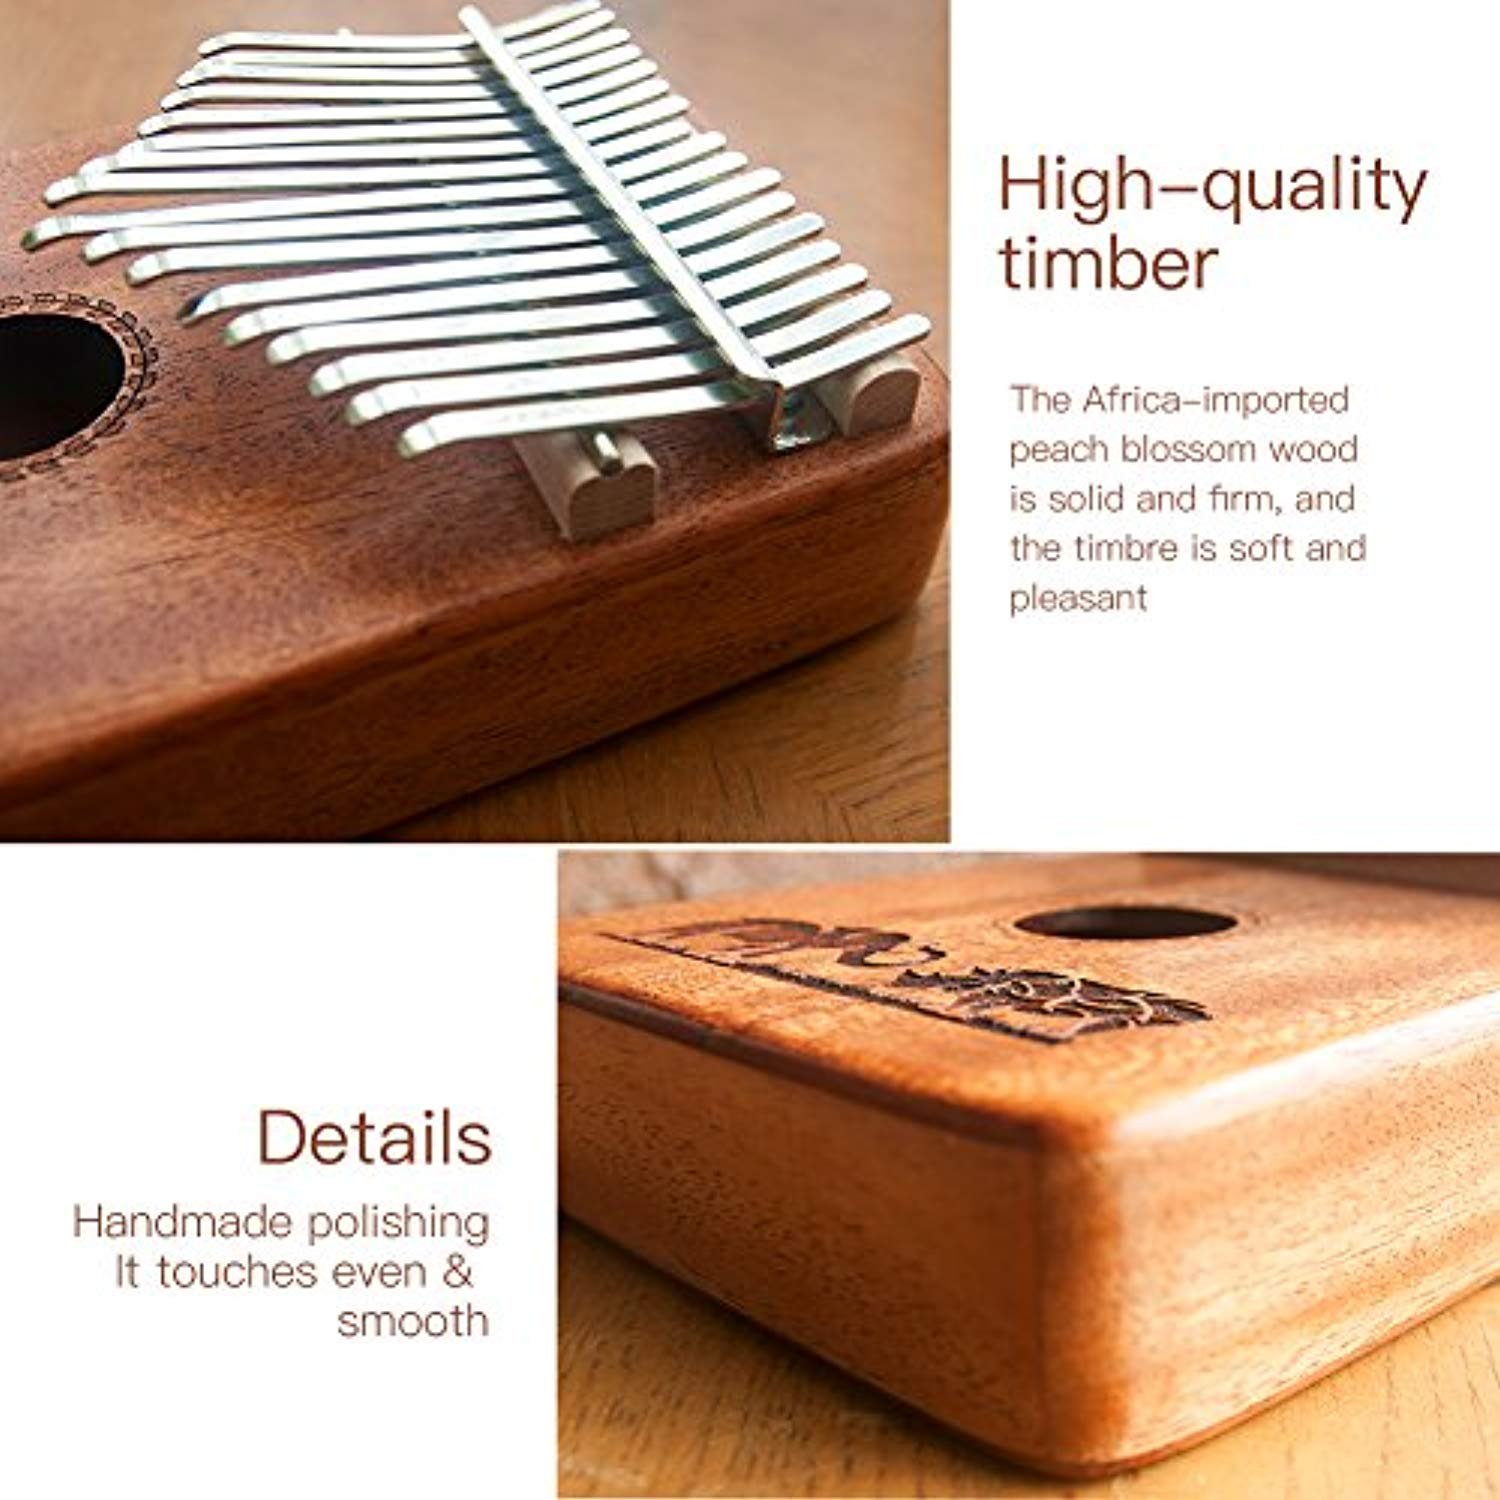 Kalimba 17 Key Thumb Piano, Finger Piano / Mbira 17 Tone Musical Toys with Tune-Hammer and Study Guide for Music Lovers Beginners and Child - Ufumbuzi - Home